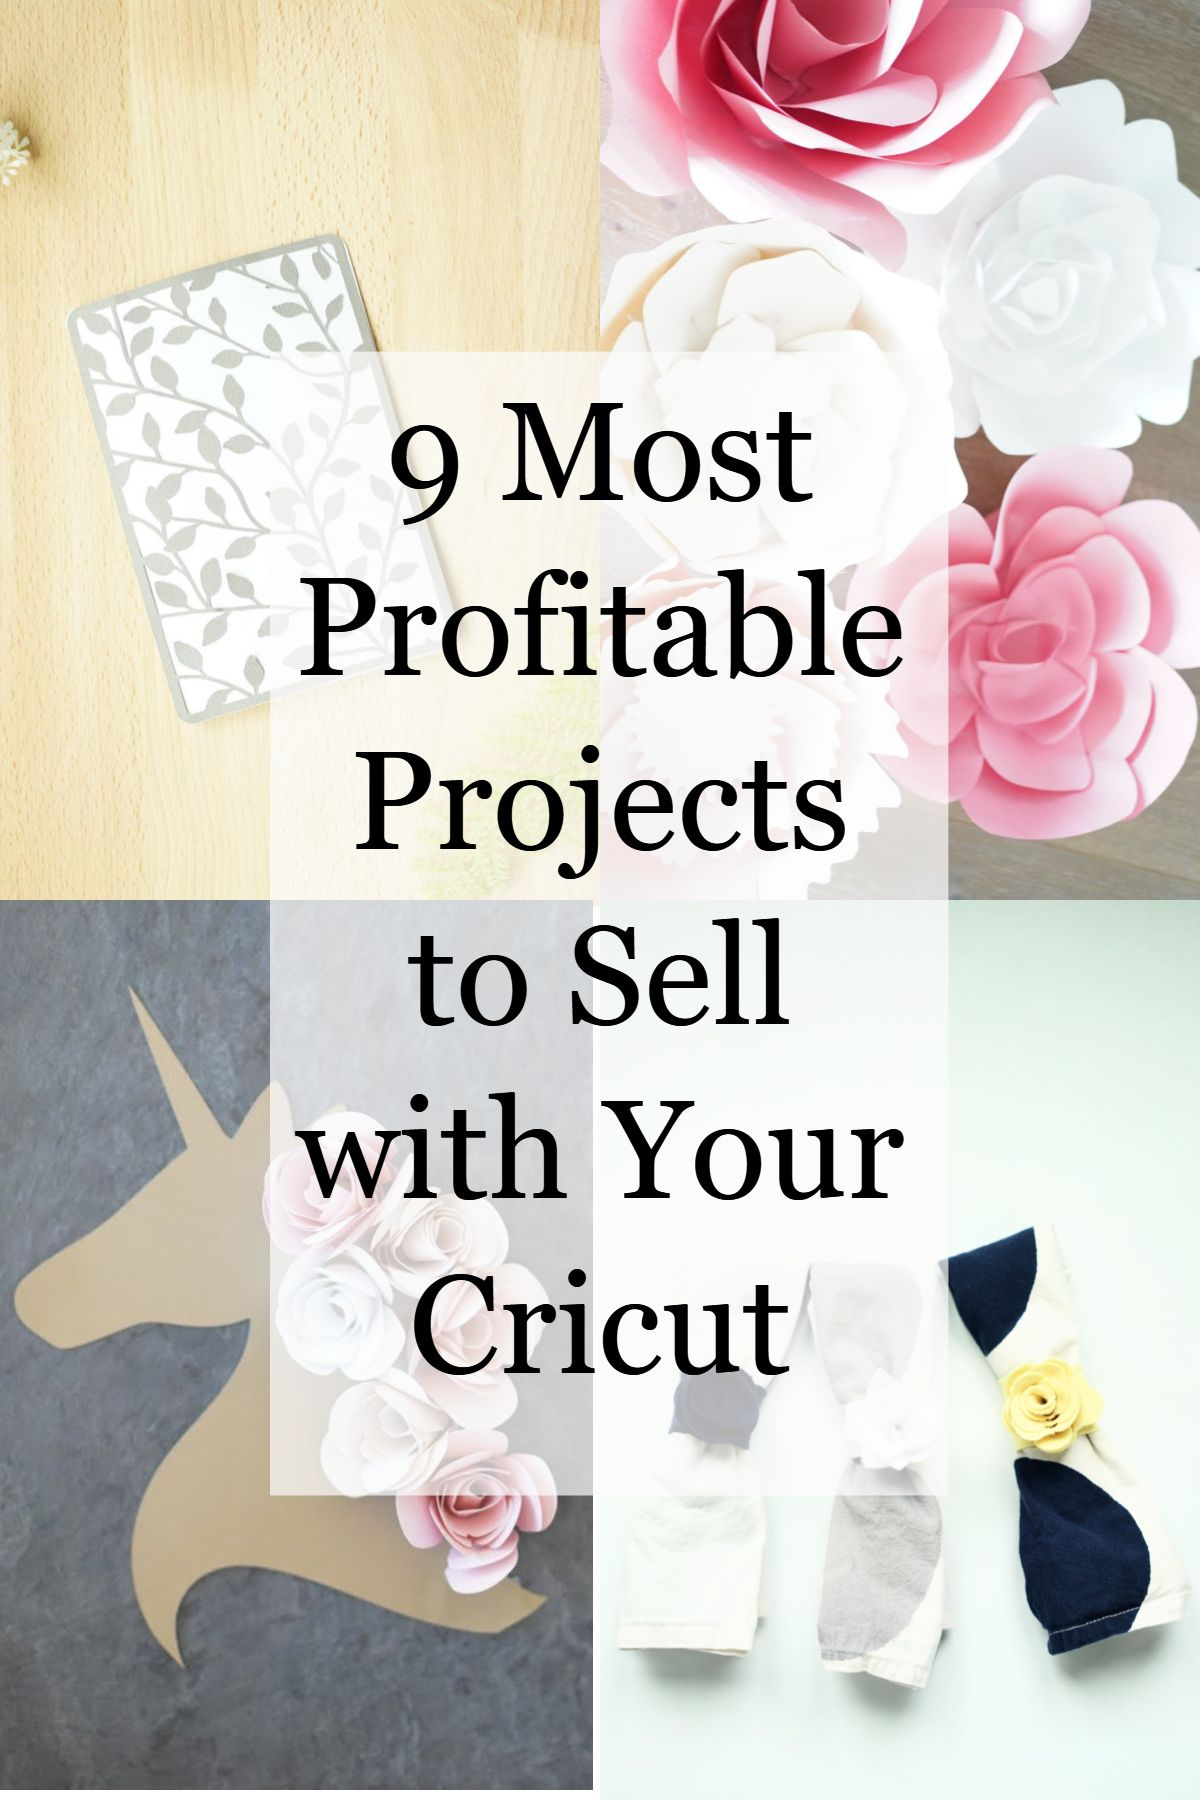 9 Most Profitable Cricut Business Projects to Sell - DOMESTIC HEIGHTS